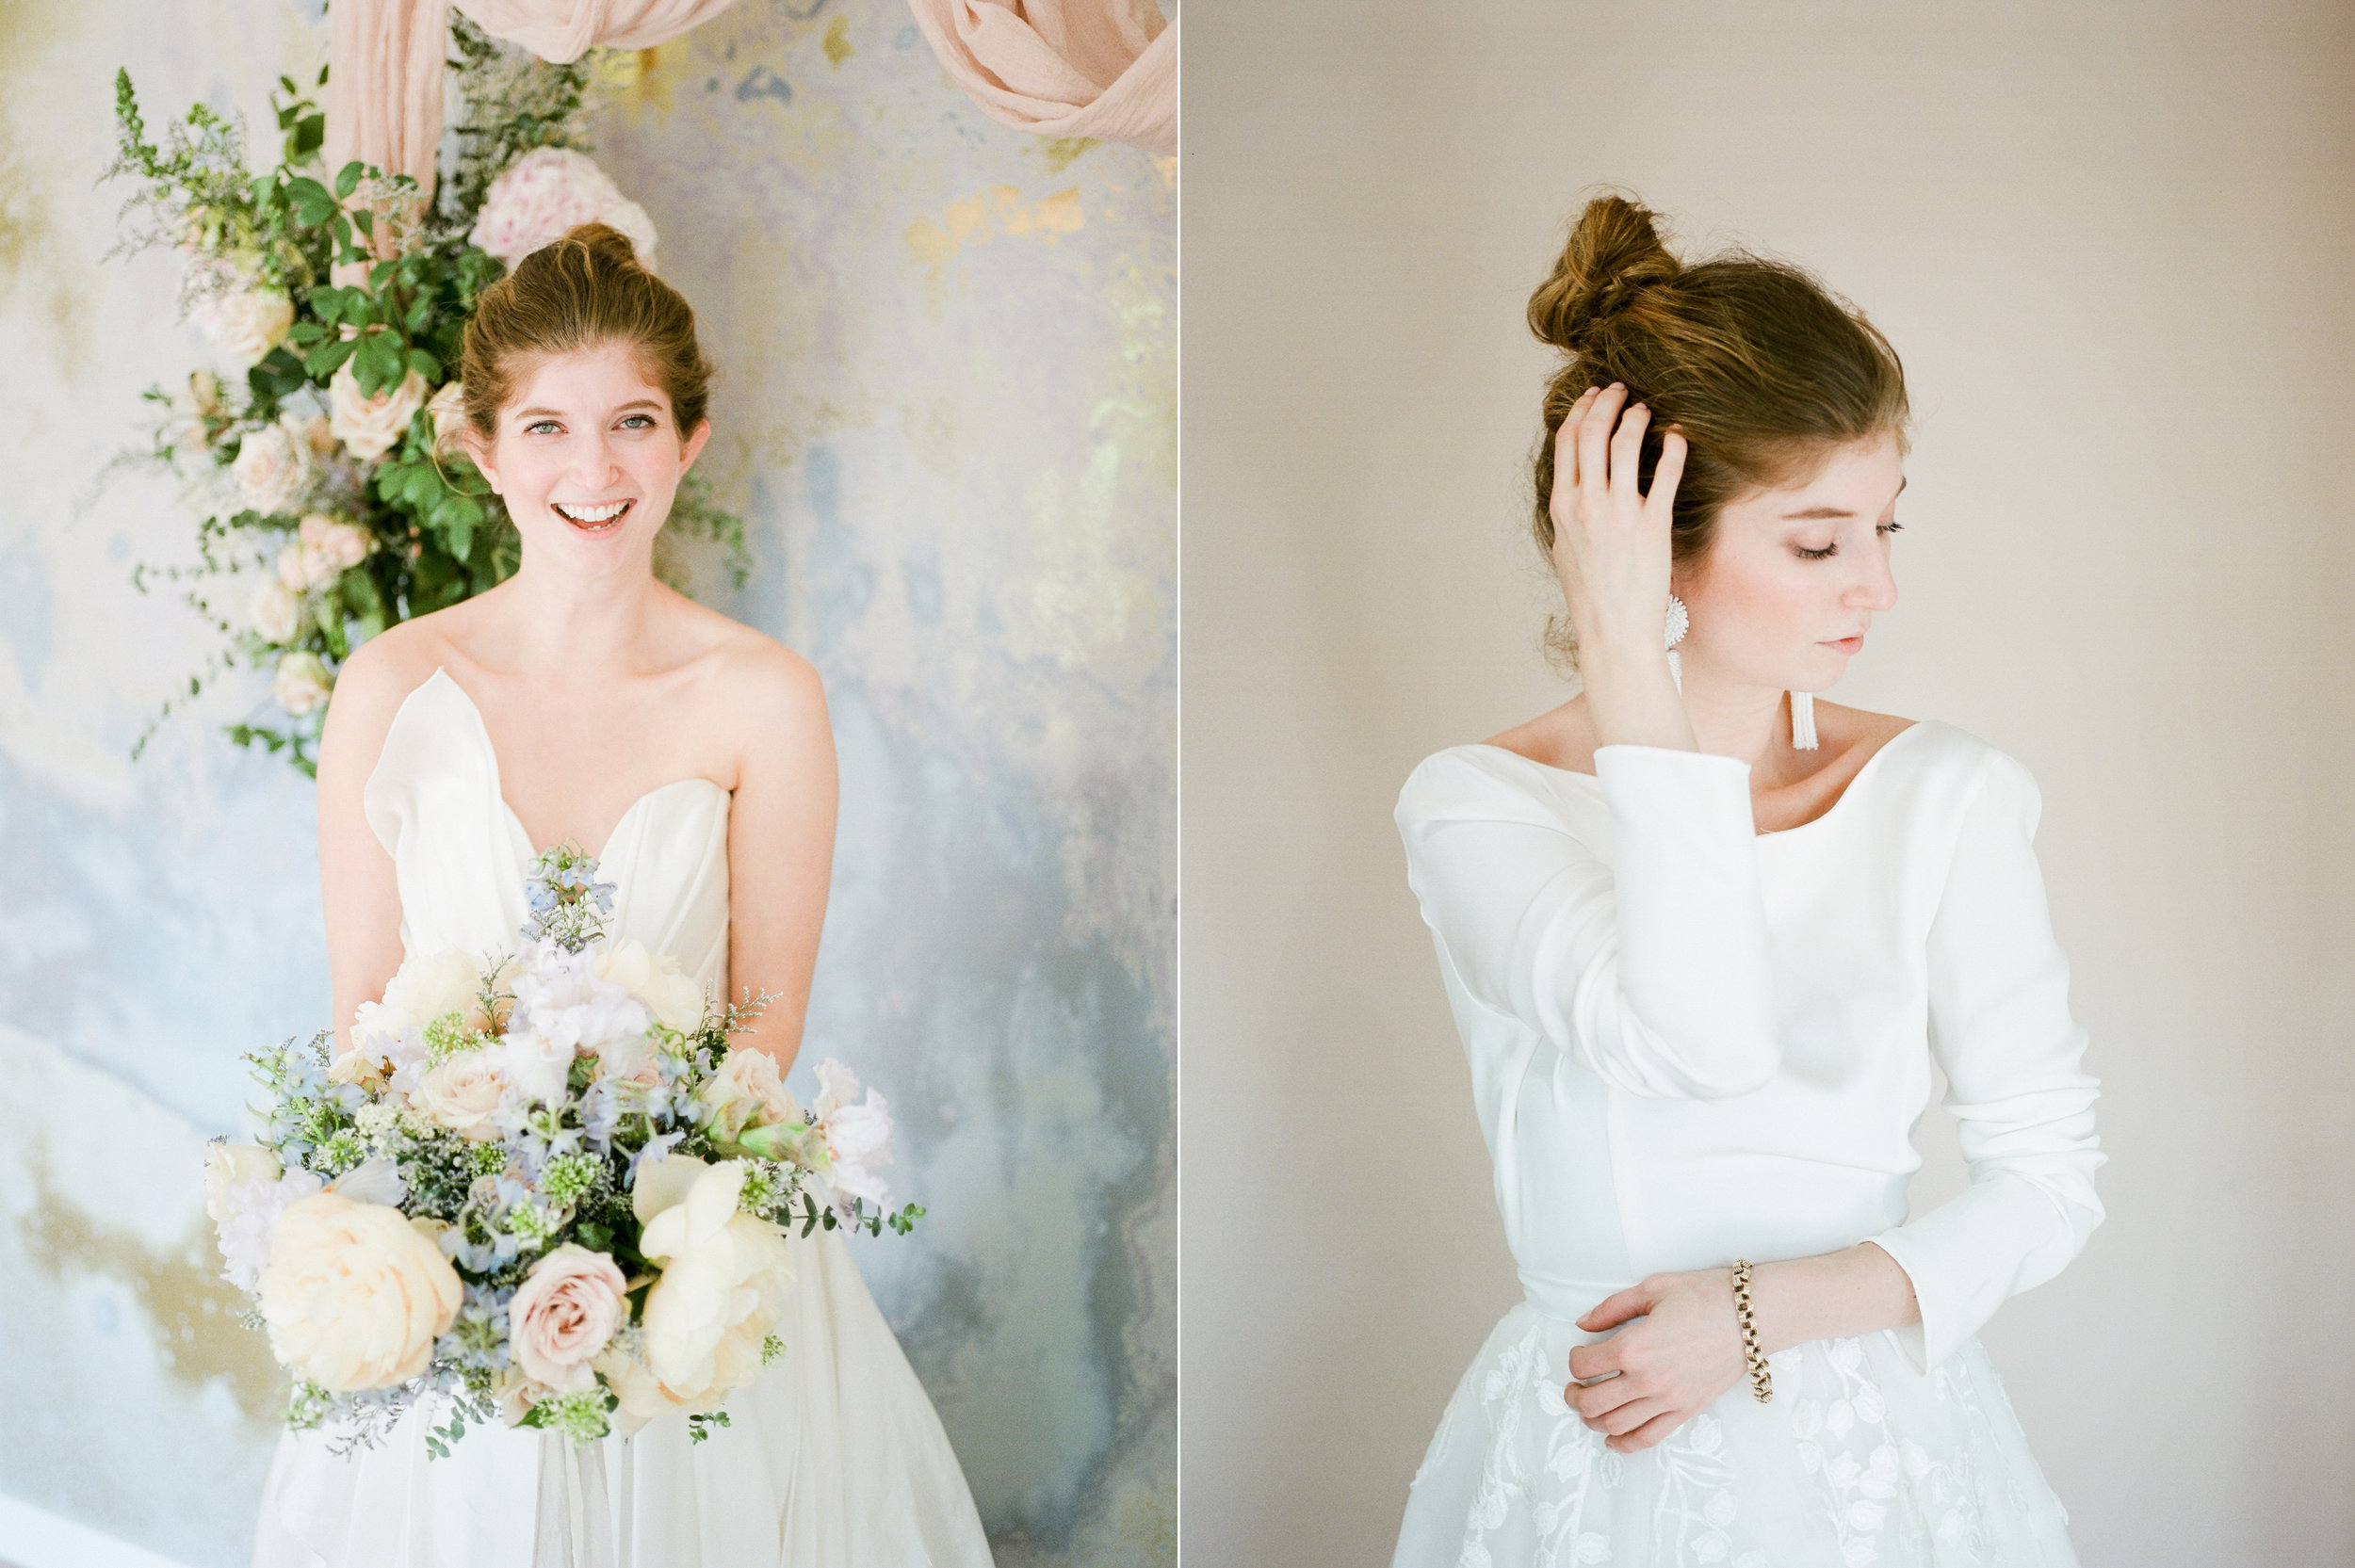 Christine Gosch_Houston wedding photographer_wedding dress styles_Houston wedding boutique_Marchesa wedding dress_ Tara Lauren bridal wedding dress_Alexandra Grecco-5.jpg